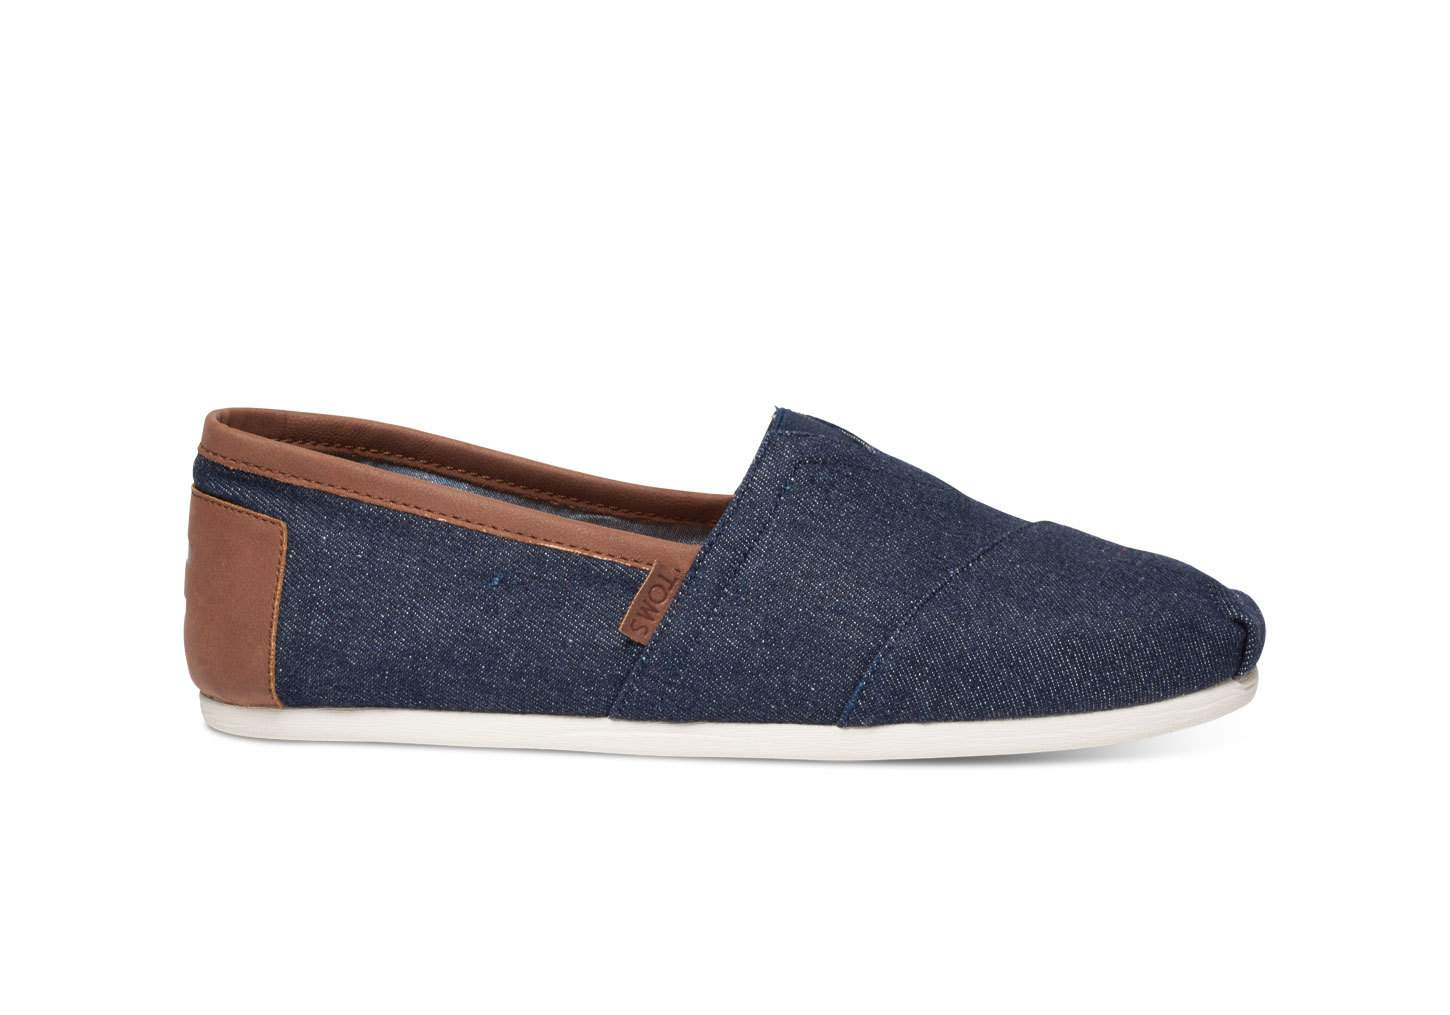 TOMS Shoes Surprise Sale: Women's Arroyo Sneakers $24, Men's Denim Classics